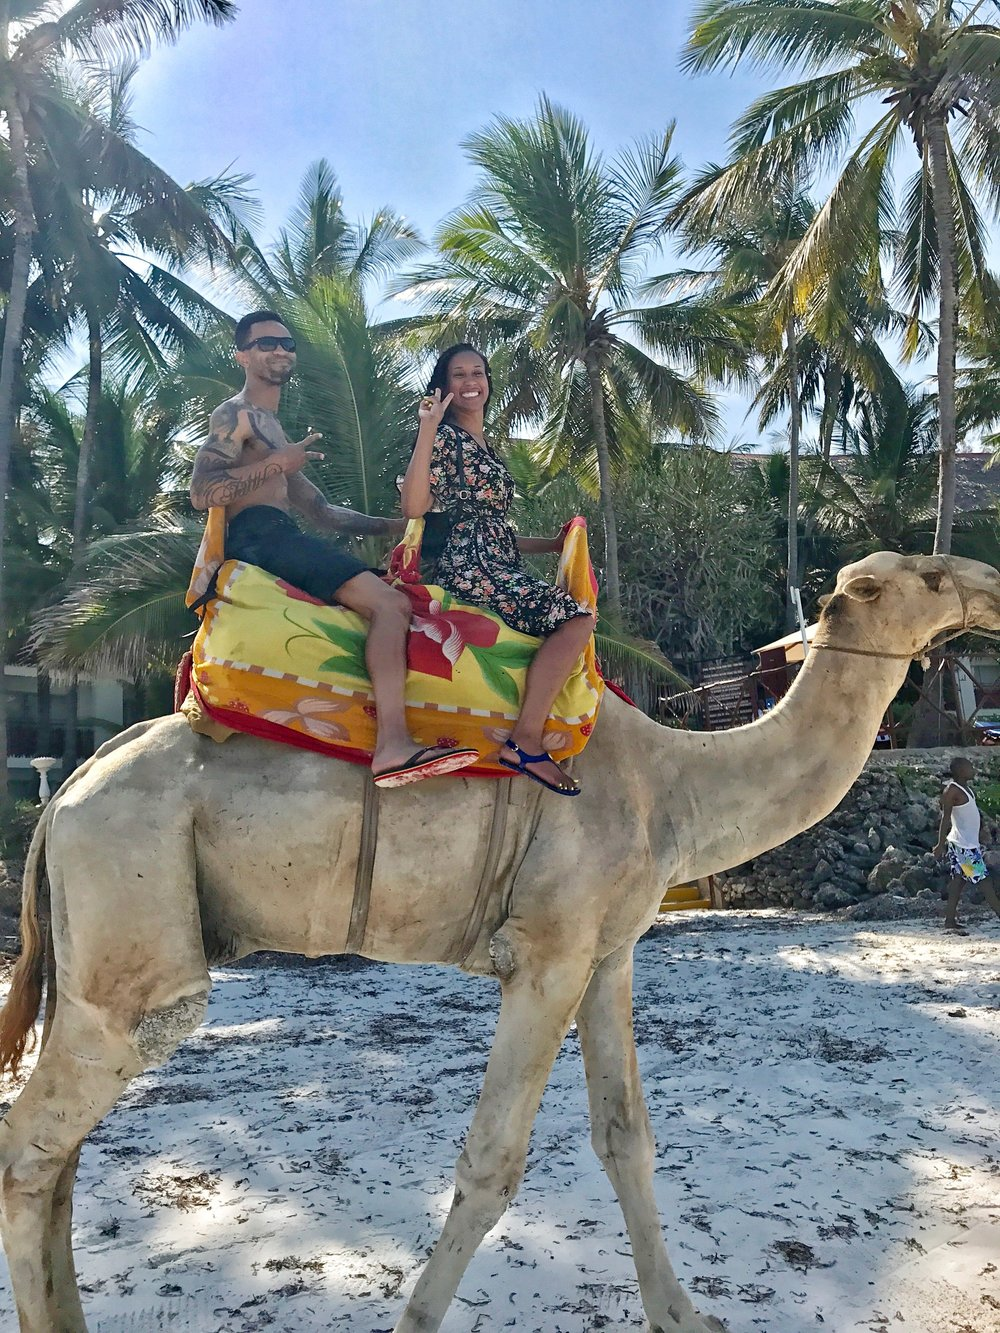 KENYA: DAY TRIP TO MOMBASA